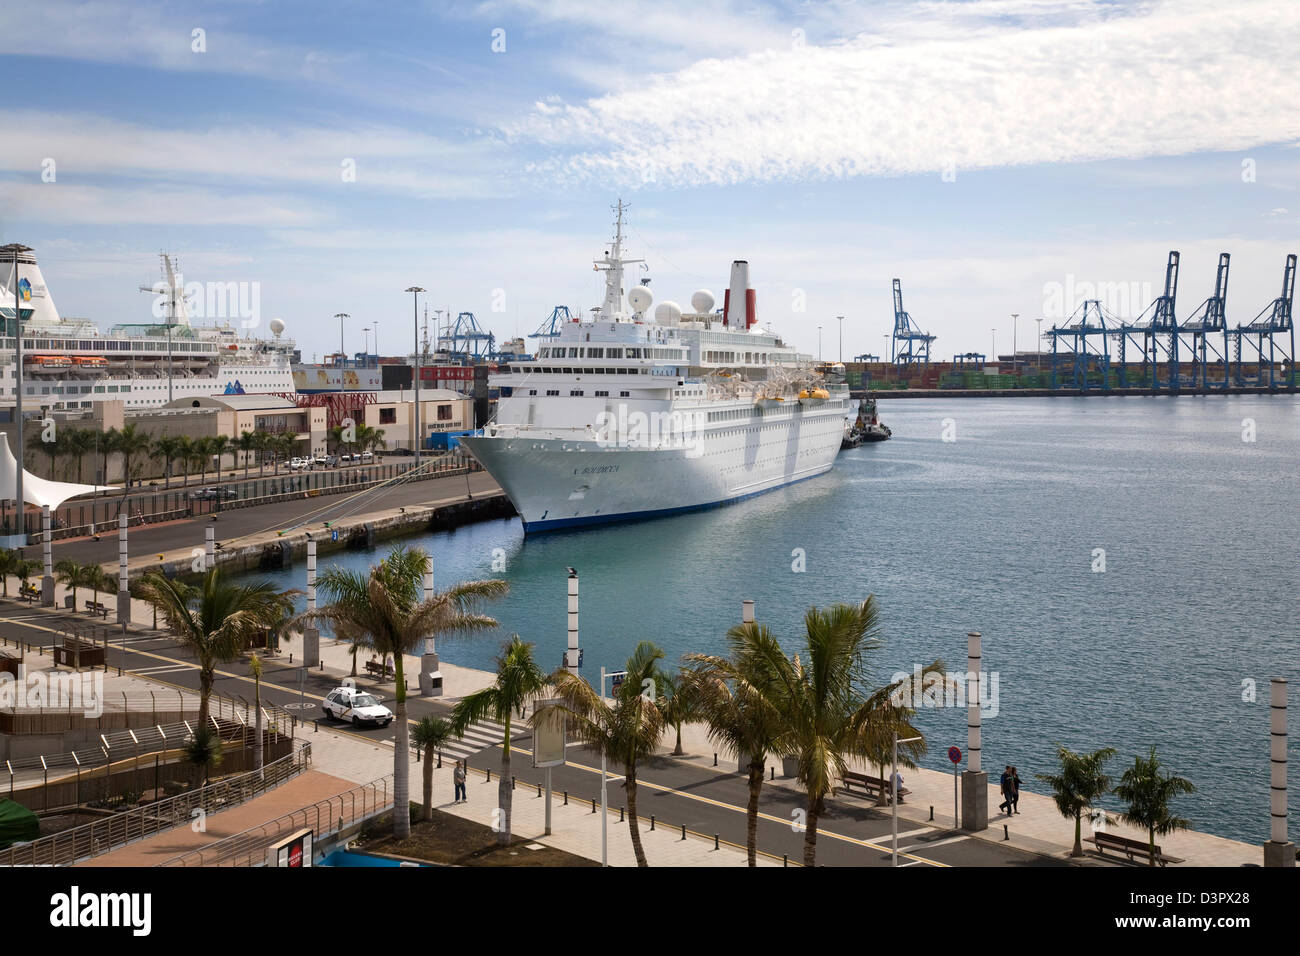 Canaries cruise ship stock photos canaries cruise ship stock images alamy - Port of las palmas gran canaria ...